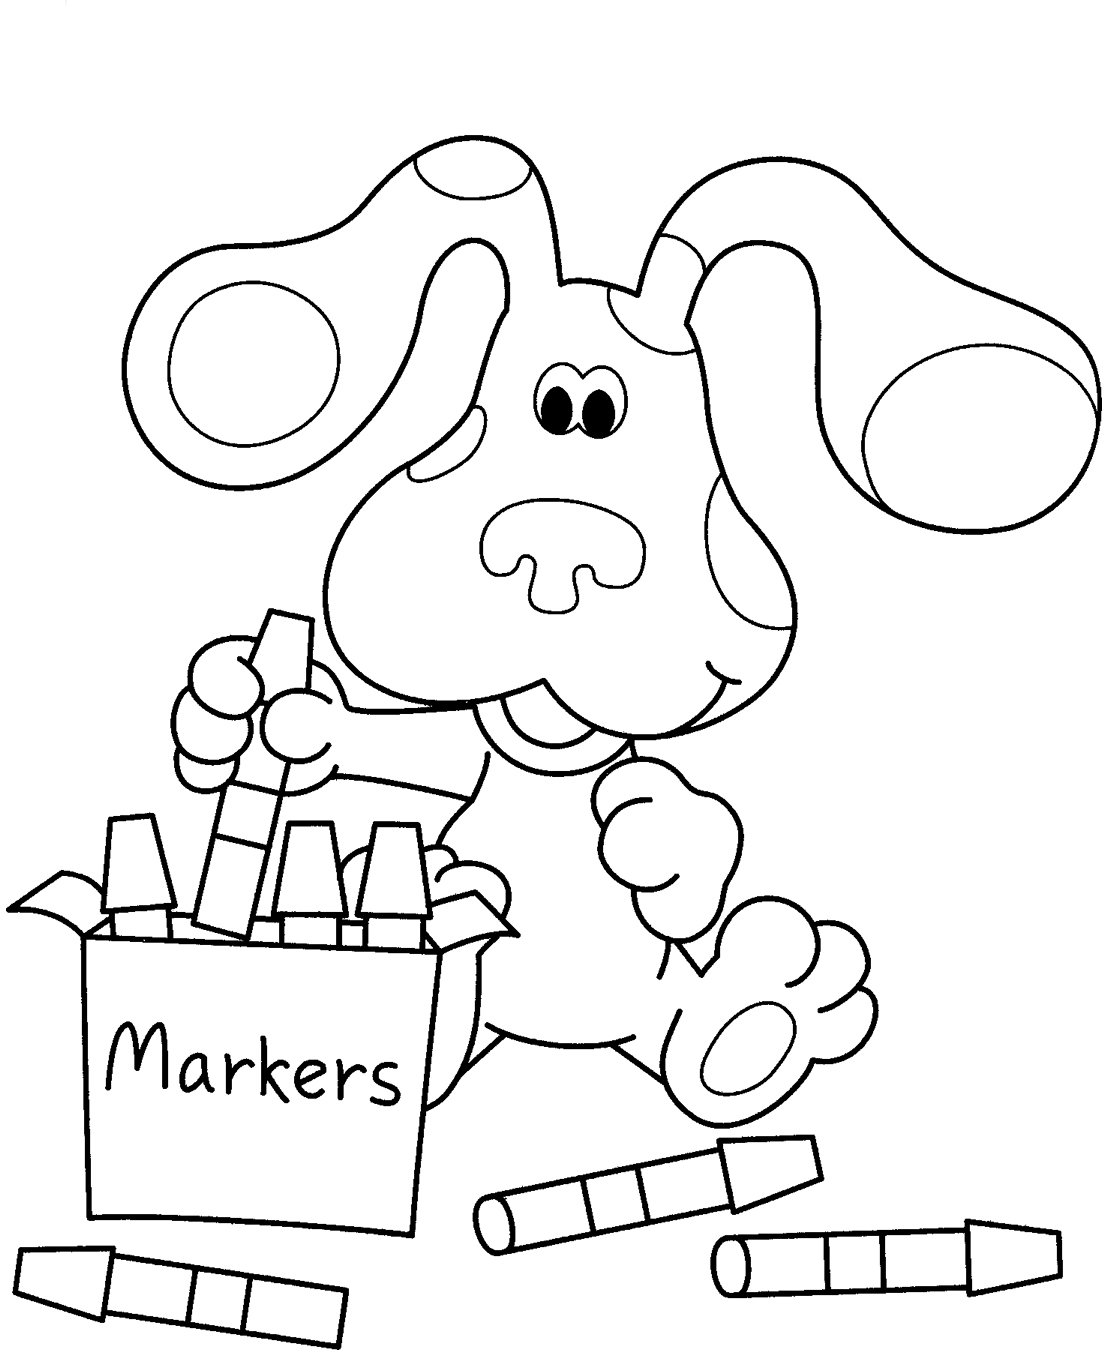 blues clues coloring pages online - photo#2